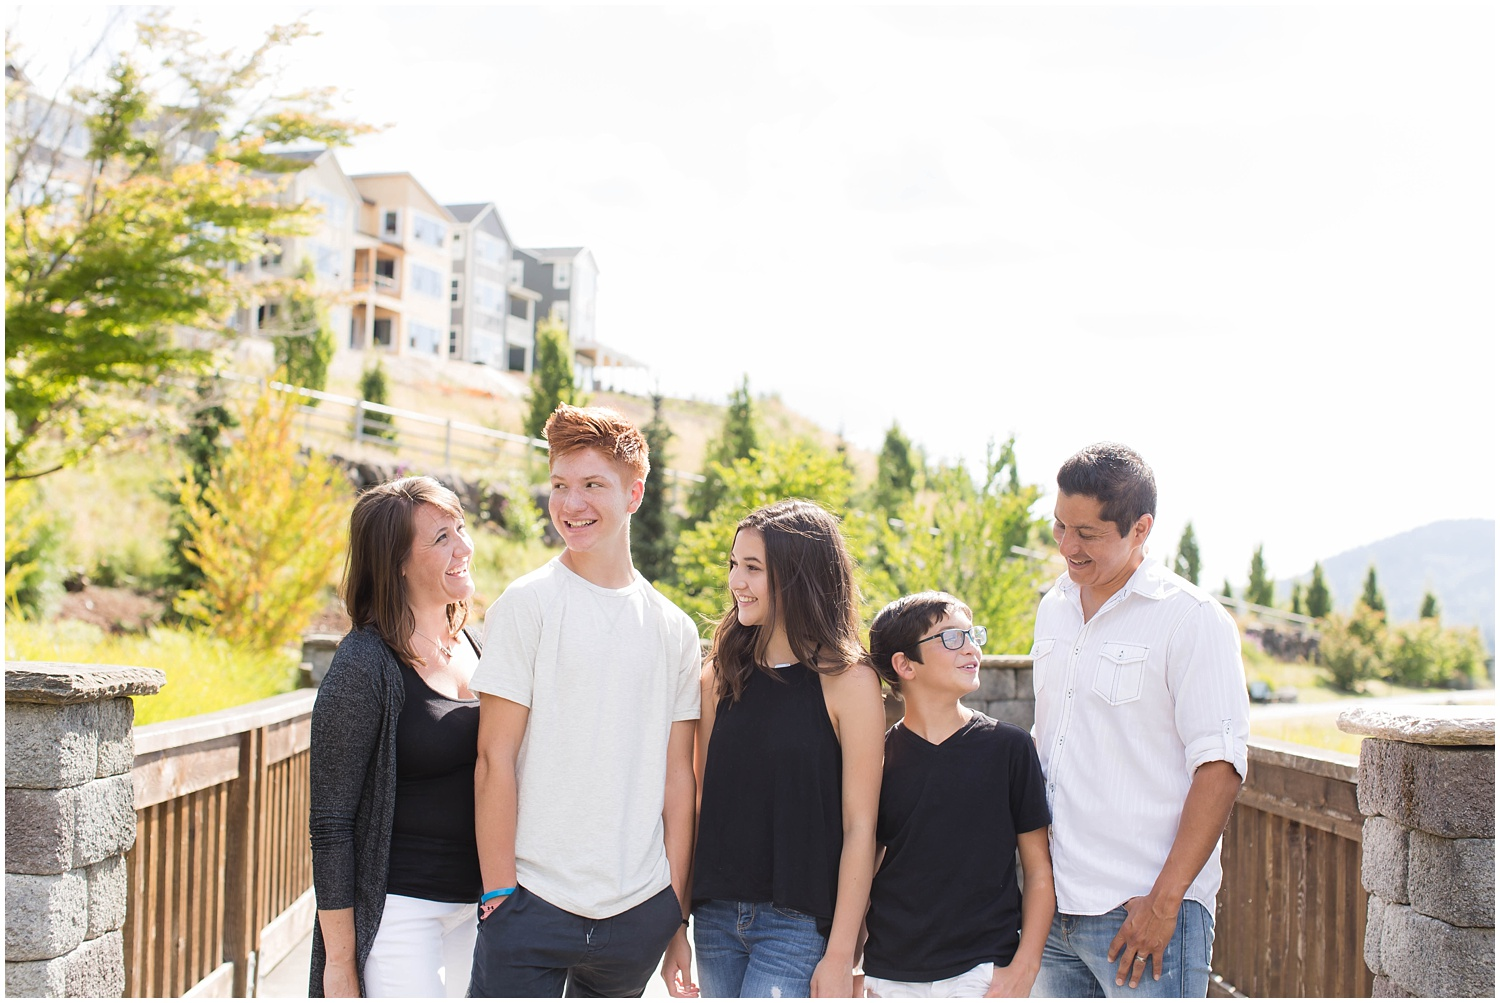 Issaquah Highlands Family Photography | Issaquah, WA | Cinnamon Wolfe Photography